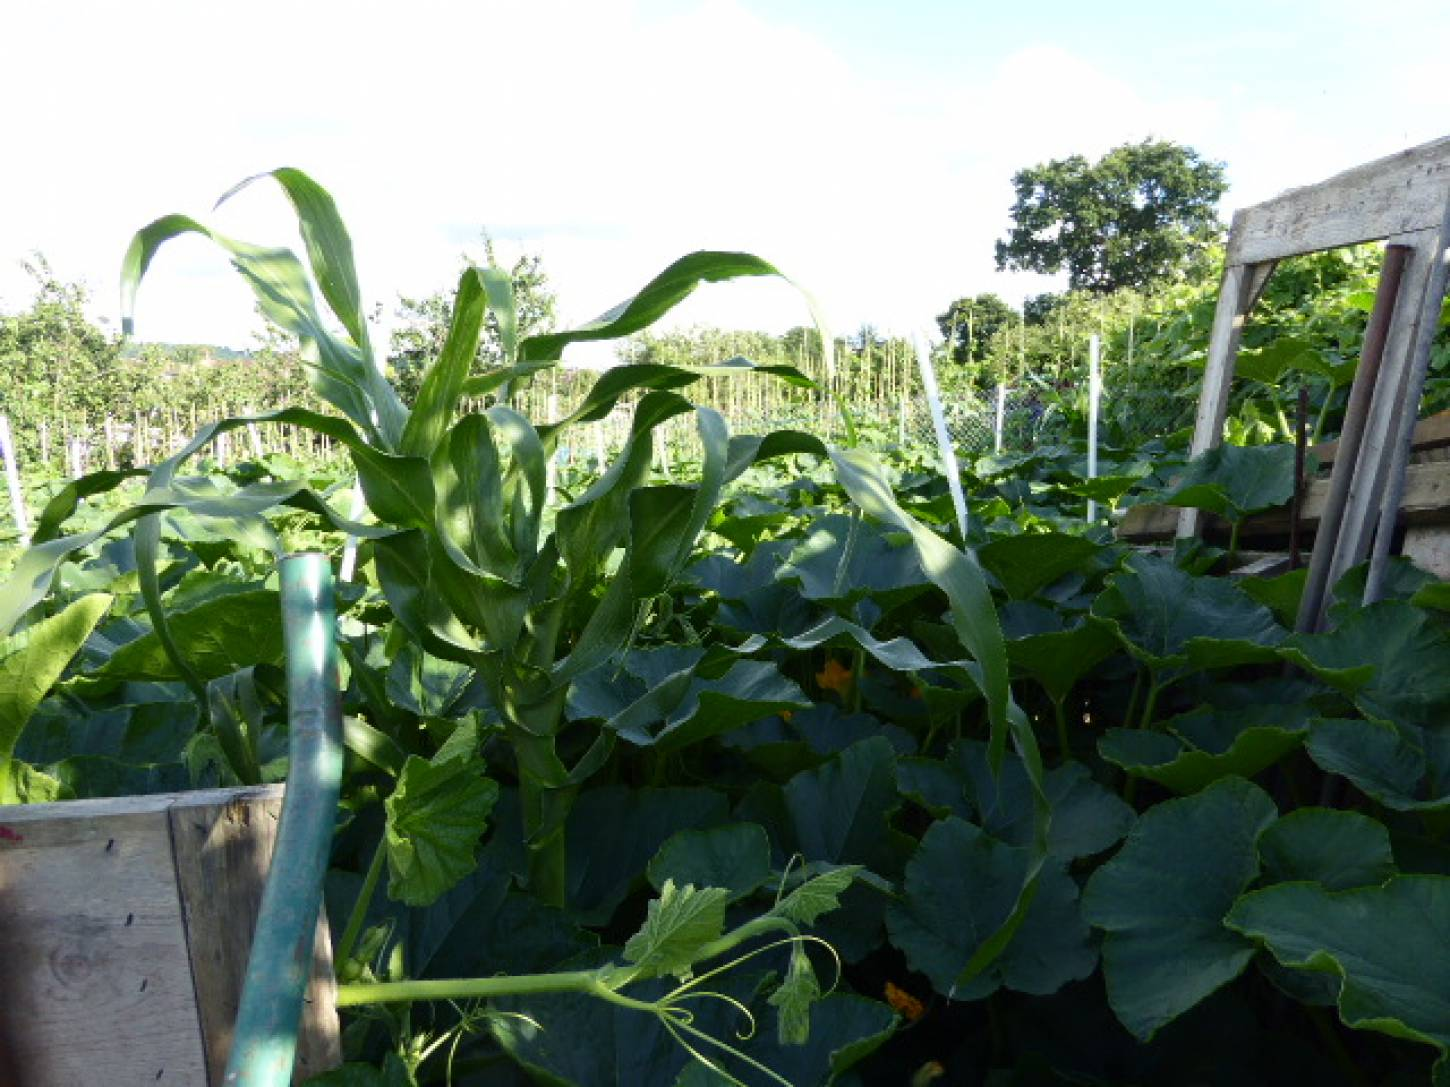 Peruvian maize seeds passed to Roy on allotments - 5:56pm&nbsp;3<sup>rd</sup>&nbsp;Jul.&nbsp;'17  <a href='http://maps.google.com/?t=h&q=51.444281,-0.099508&z=18&output=embed' target=_blank><img src='http://www.brockwell-bake.org.uk/img/marker.png' style='border:none;vertical-align:top' height=16px></a>